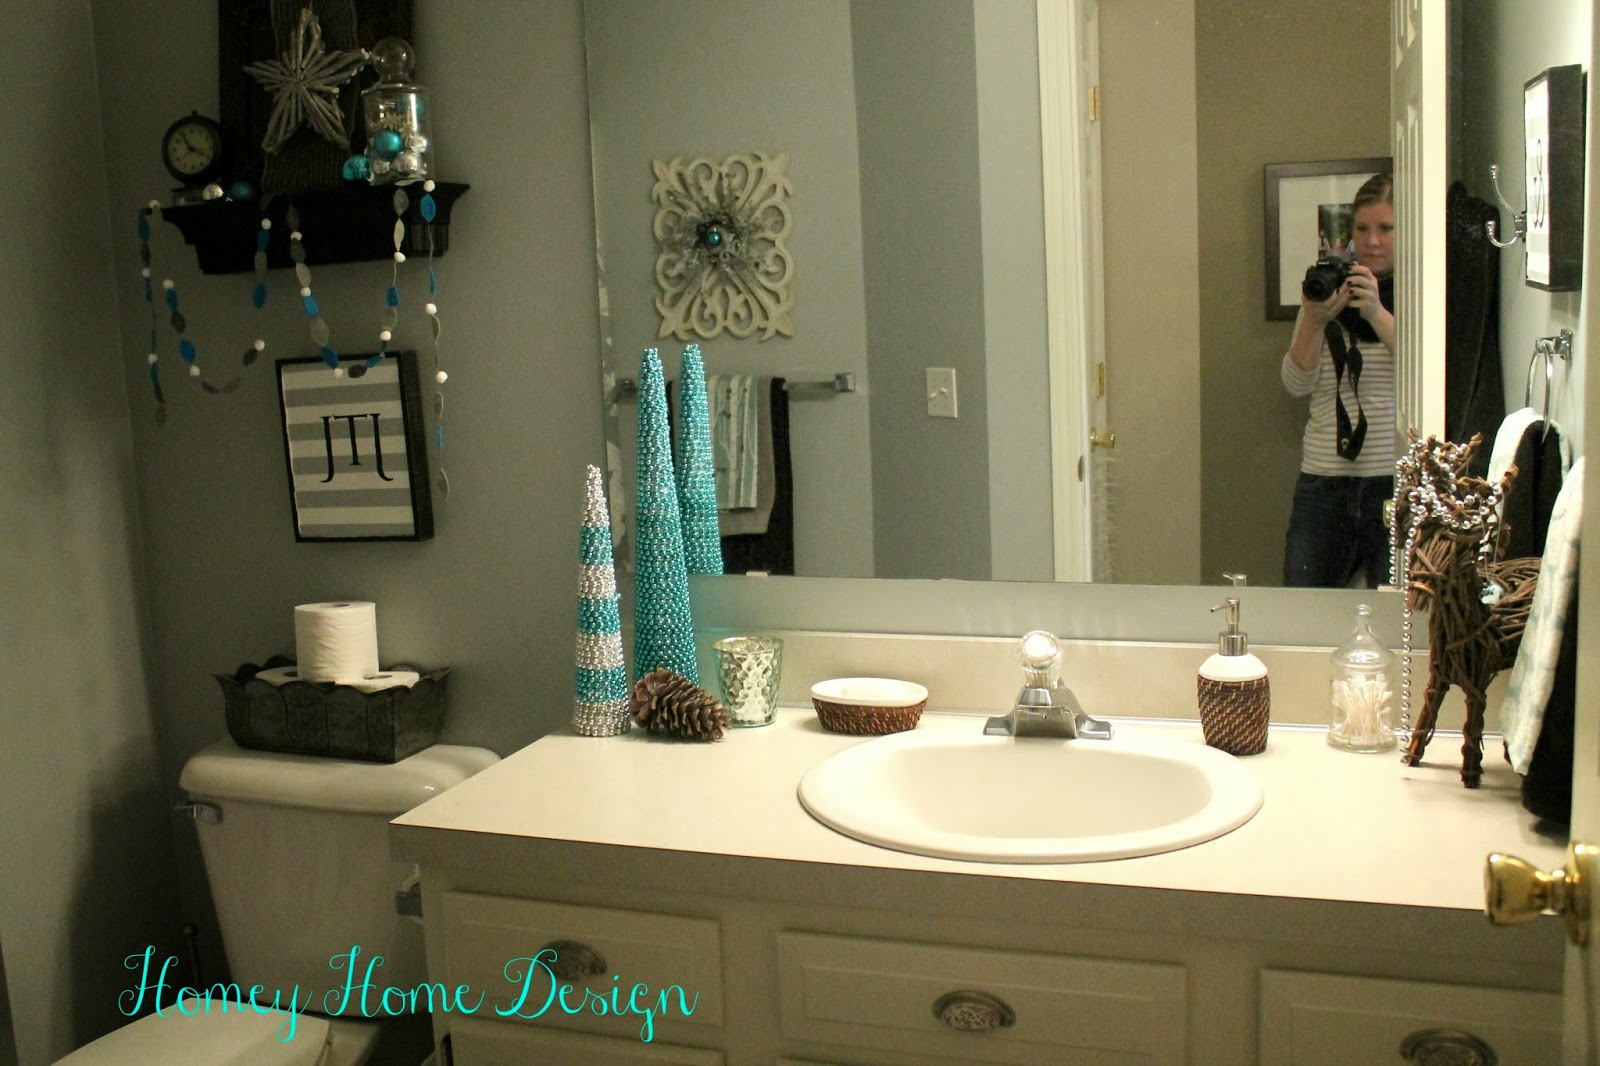 Homey home design bathroom christmas ideas for New home bathroom ideas